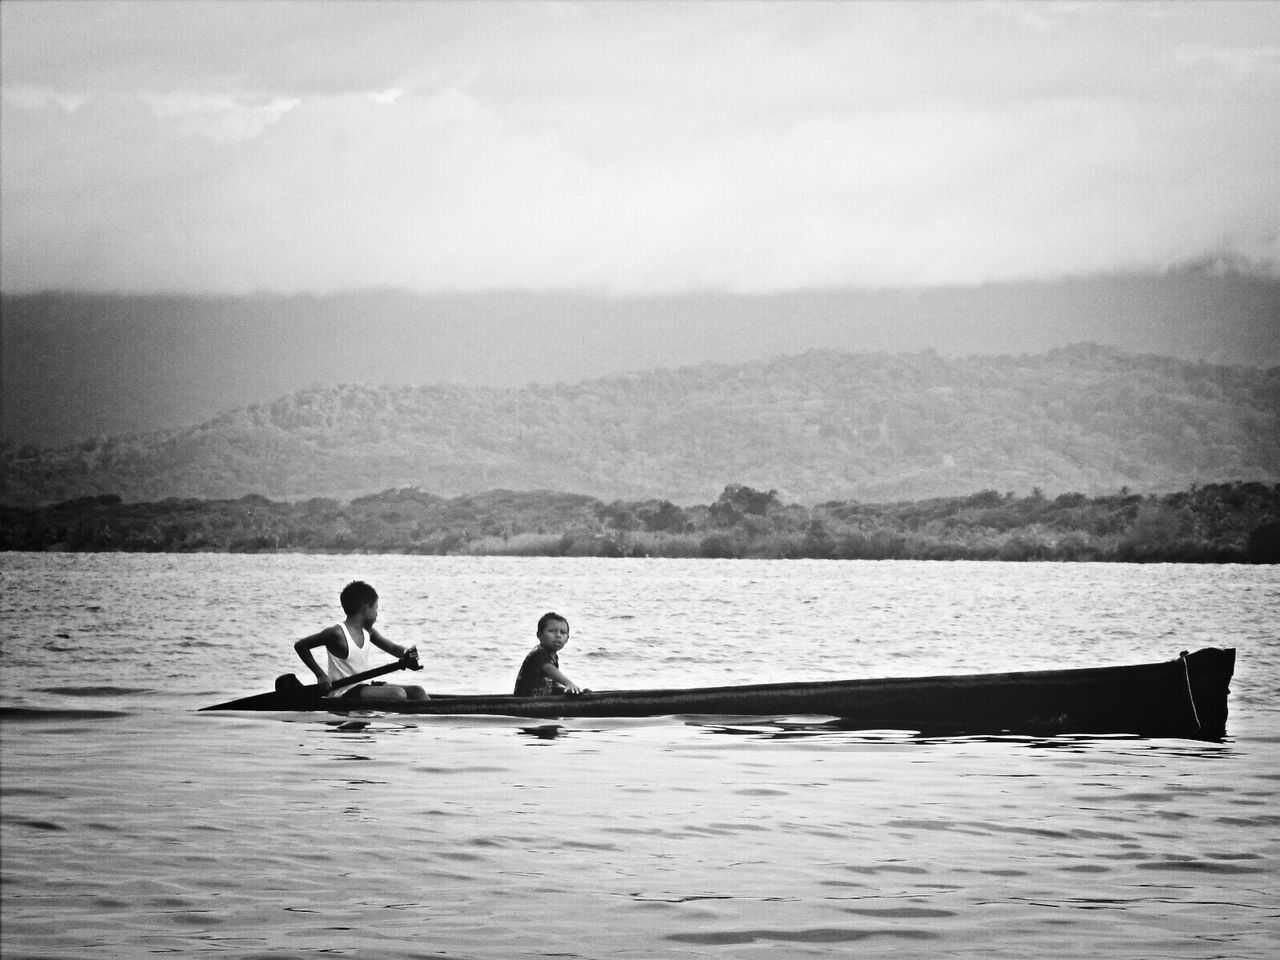 rowing, water, two people, men, oar, mountain, nautical vessel, sitting, real people, leisure activity, nature, sport rowing, day, sport, outdoors, sky, togetherness, sea, beauty in nature, sculling, adult, people, adults only